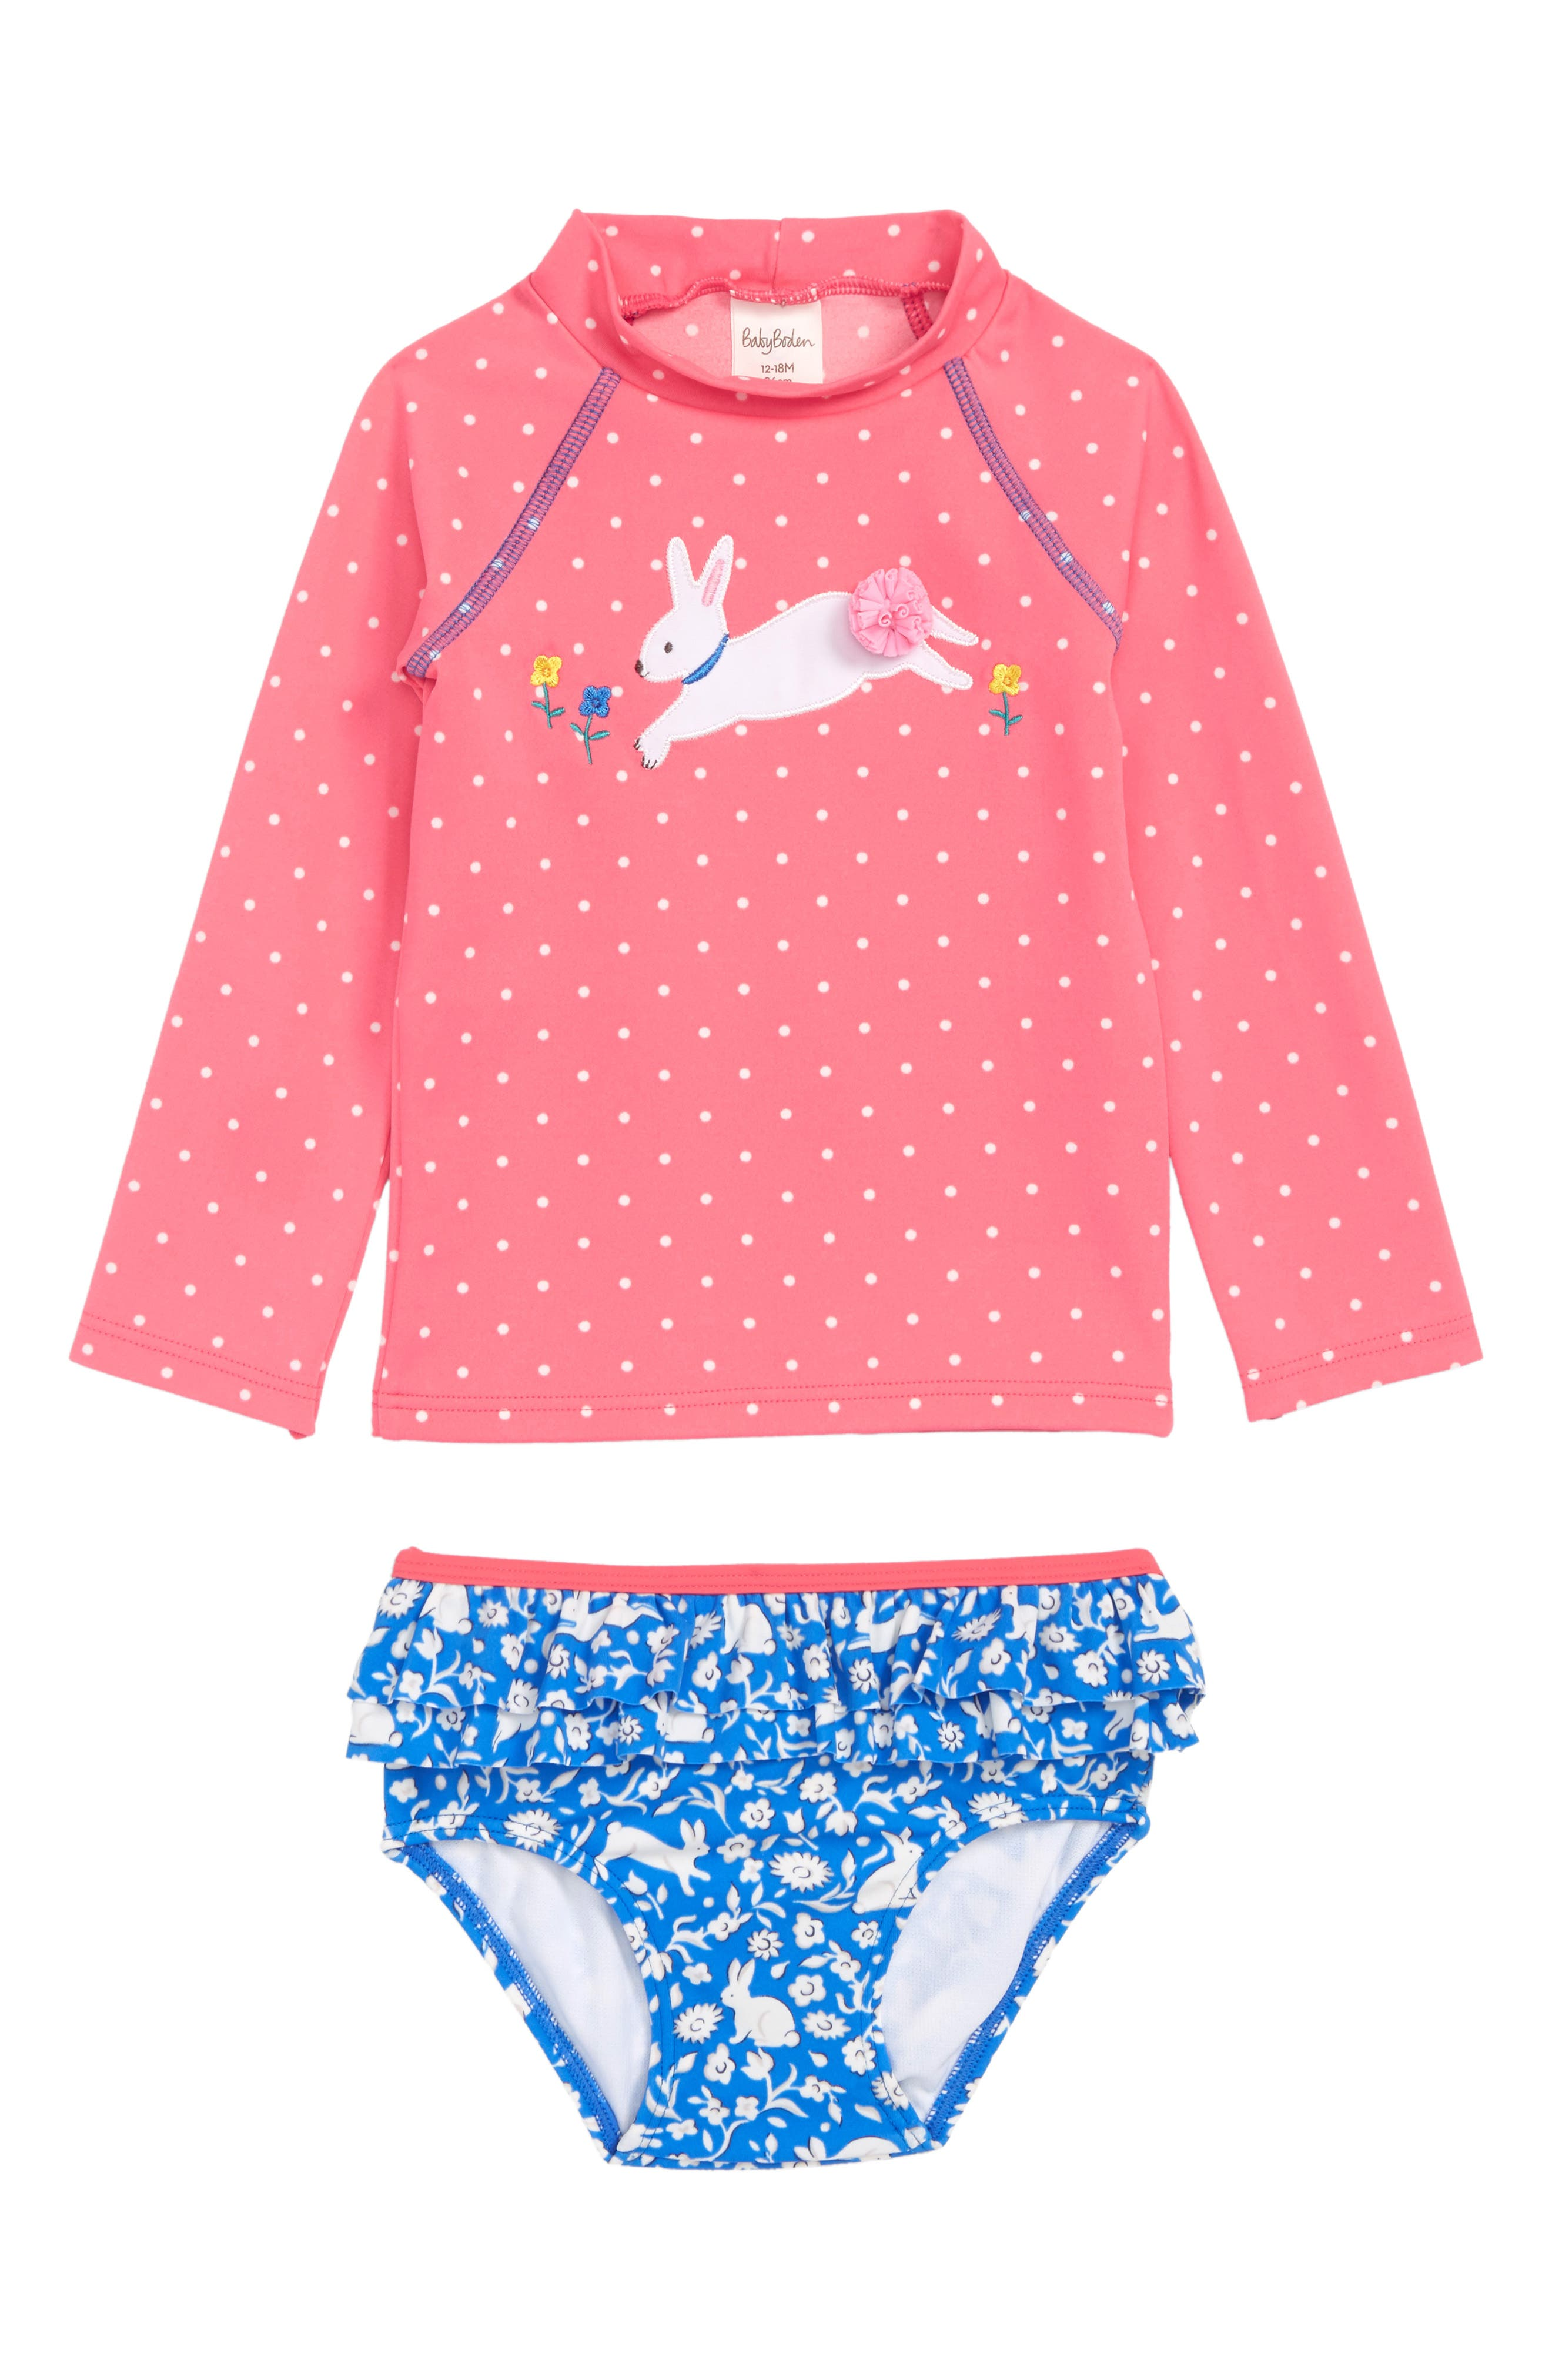 74a183cc7dad9 Baby Mini Boden | Nordstrom